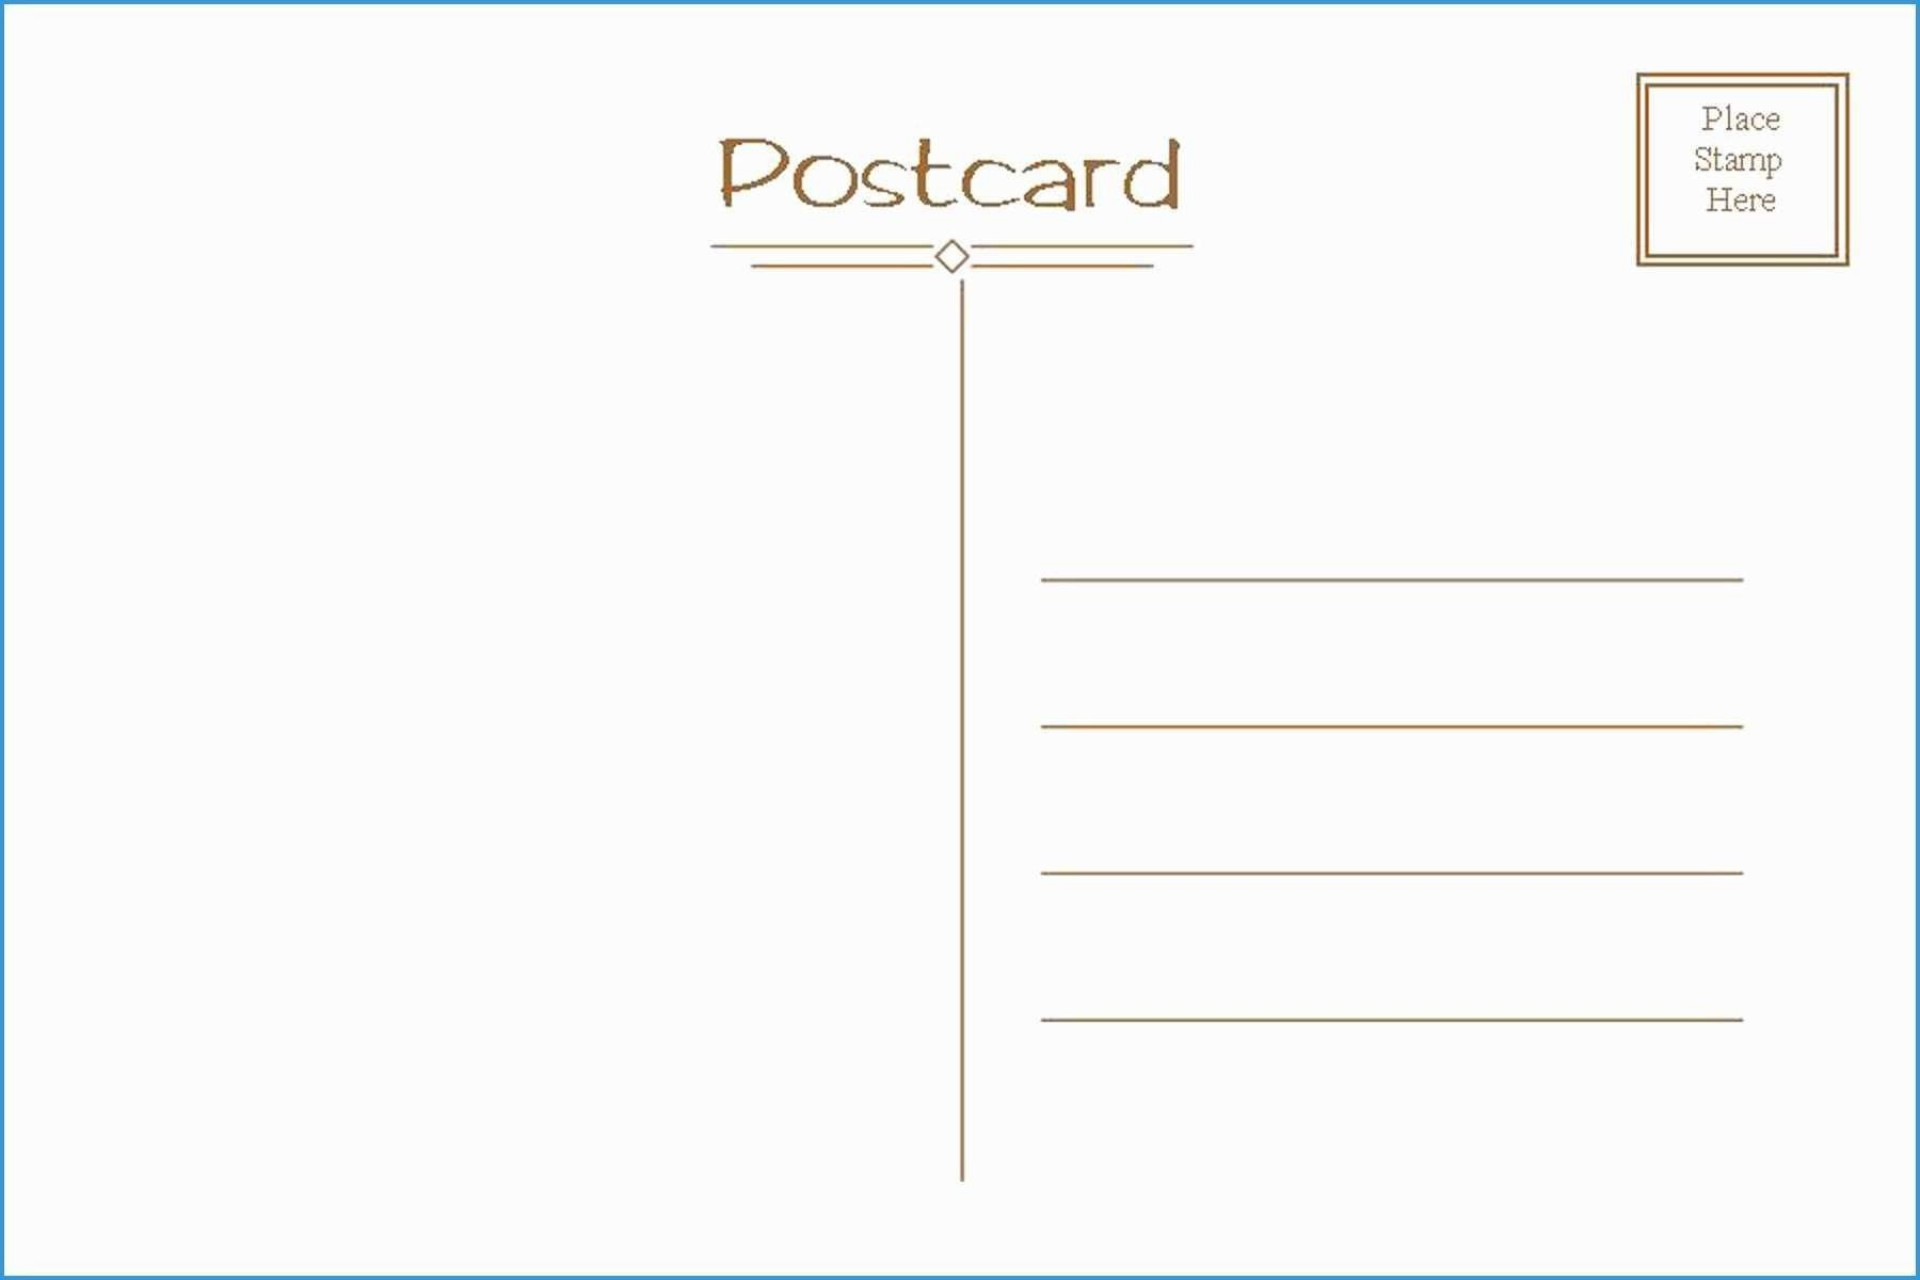 006 Fascinating Free Postcard Template Download Microsoft Word Example 1920